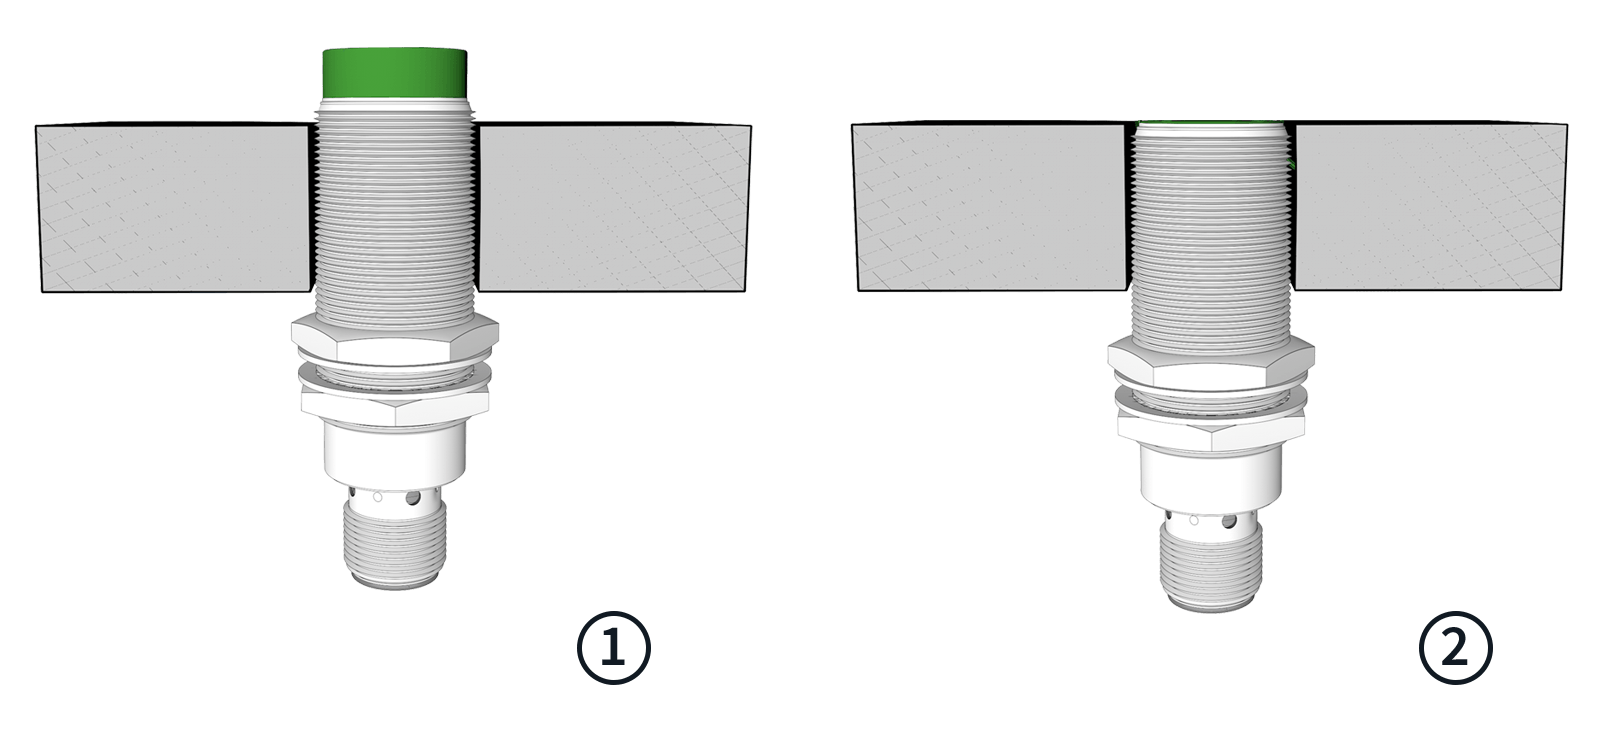 Inductive sensor flush and non-flush mounted